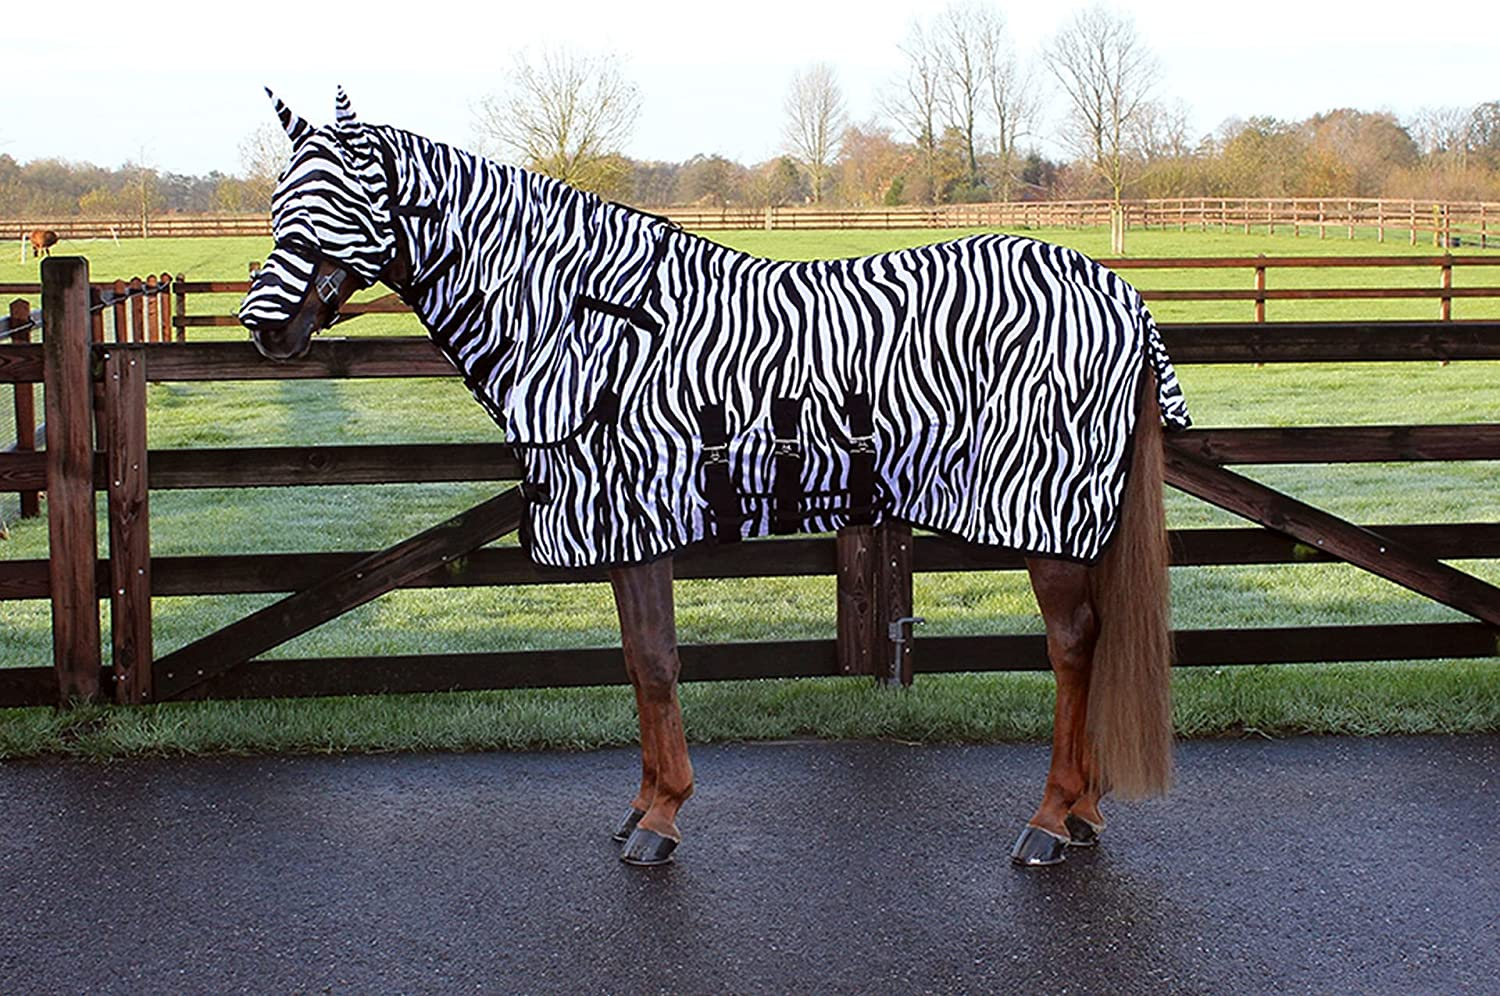 QHP Fly Turnout Rug and Fly Mask Zebra